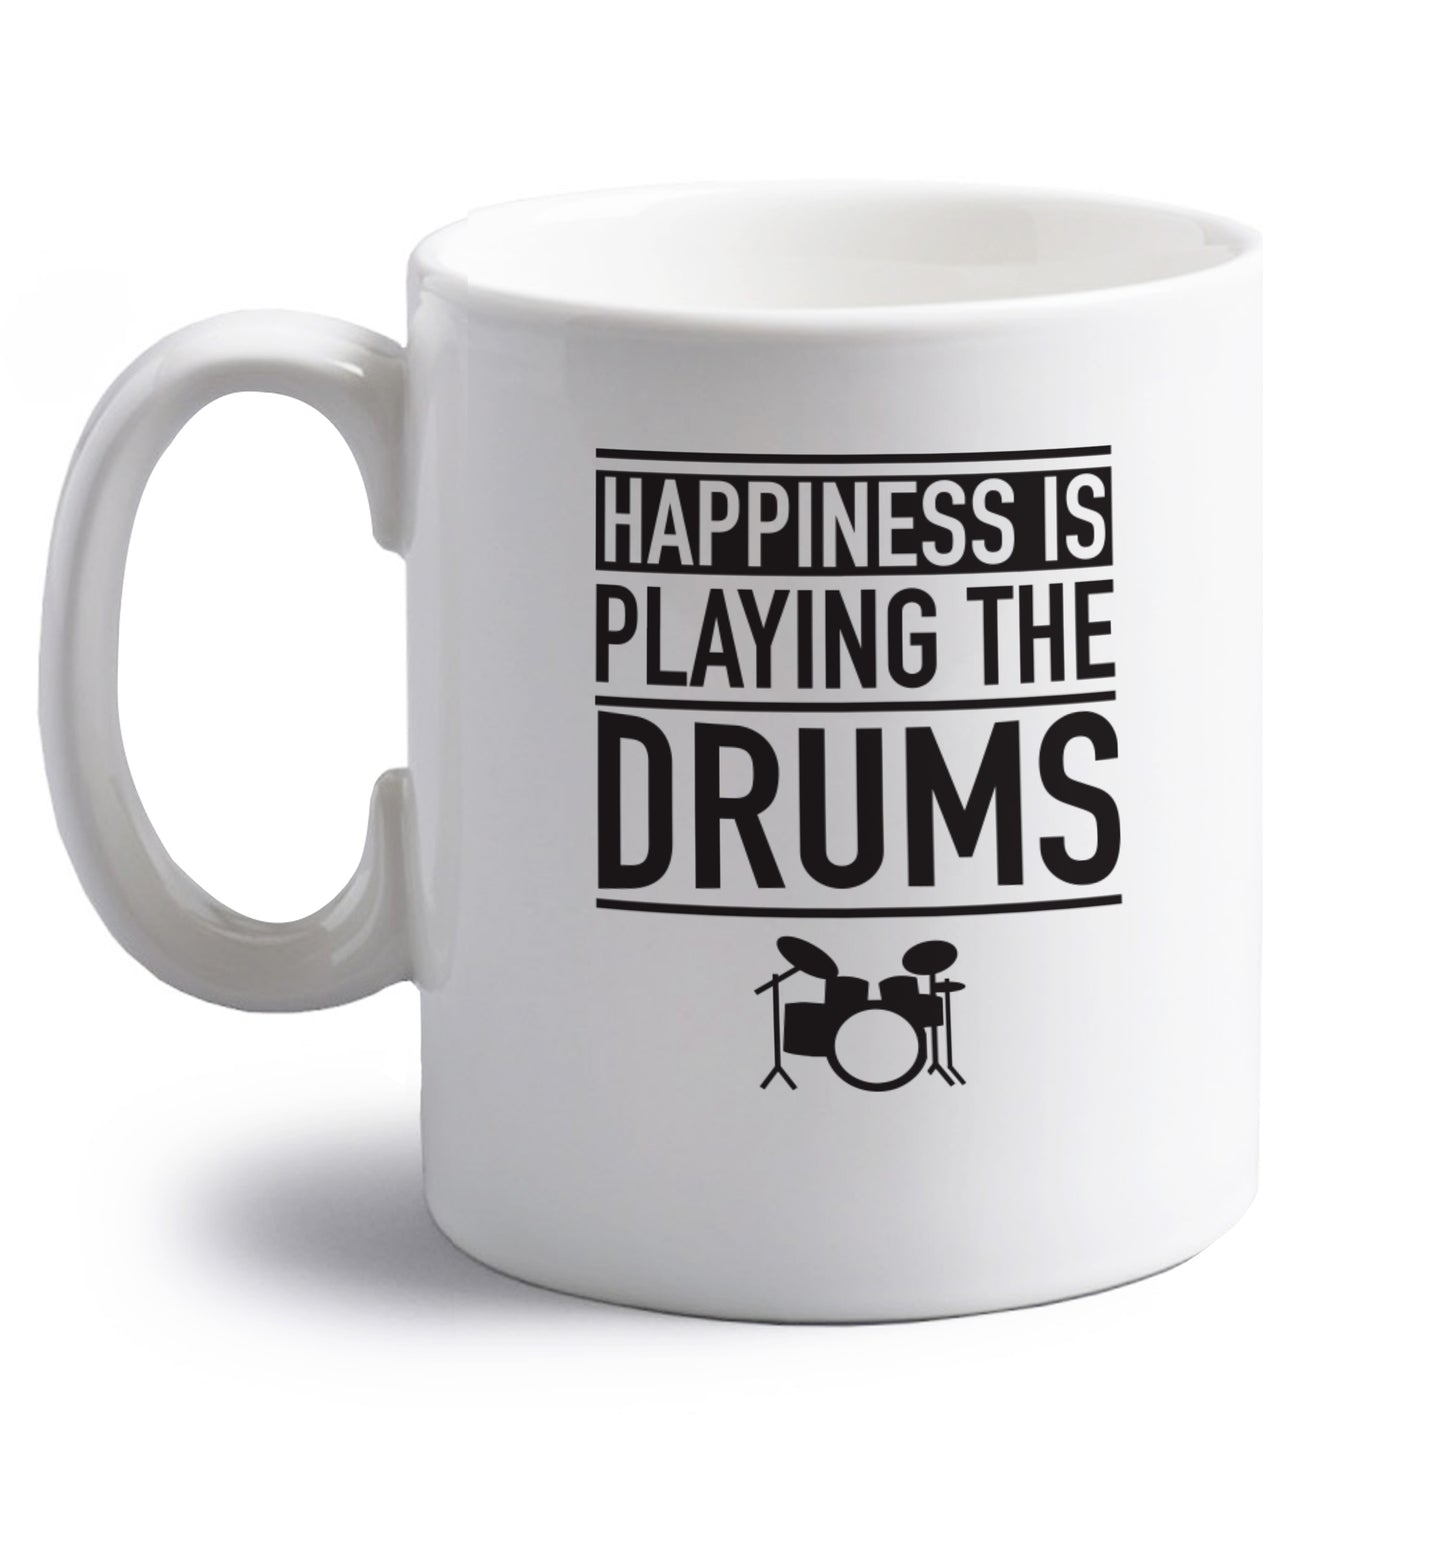 Happiness is playing the drums right handed white ceramic mug